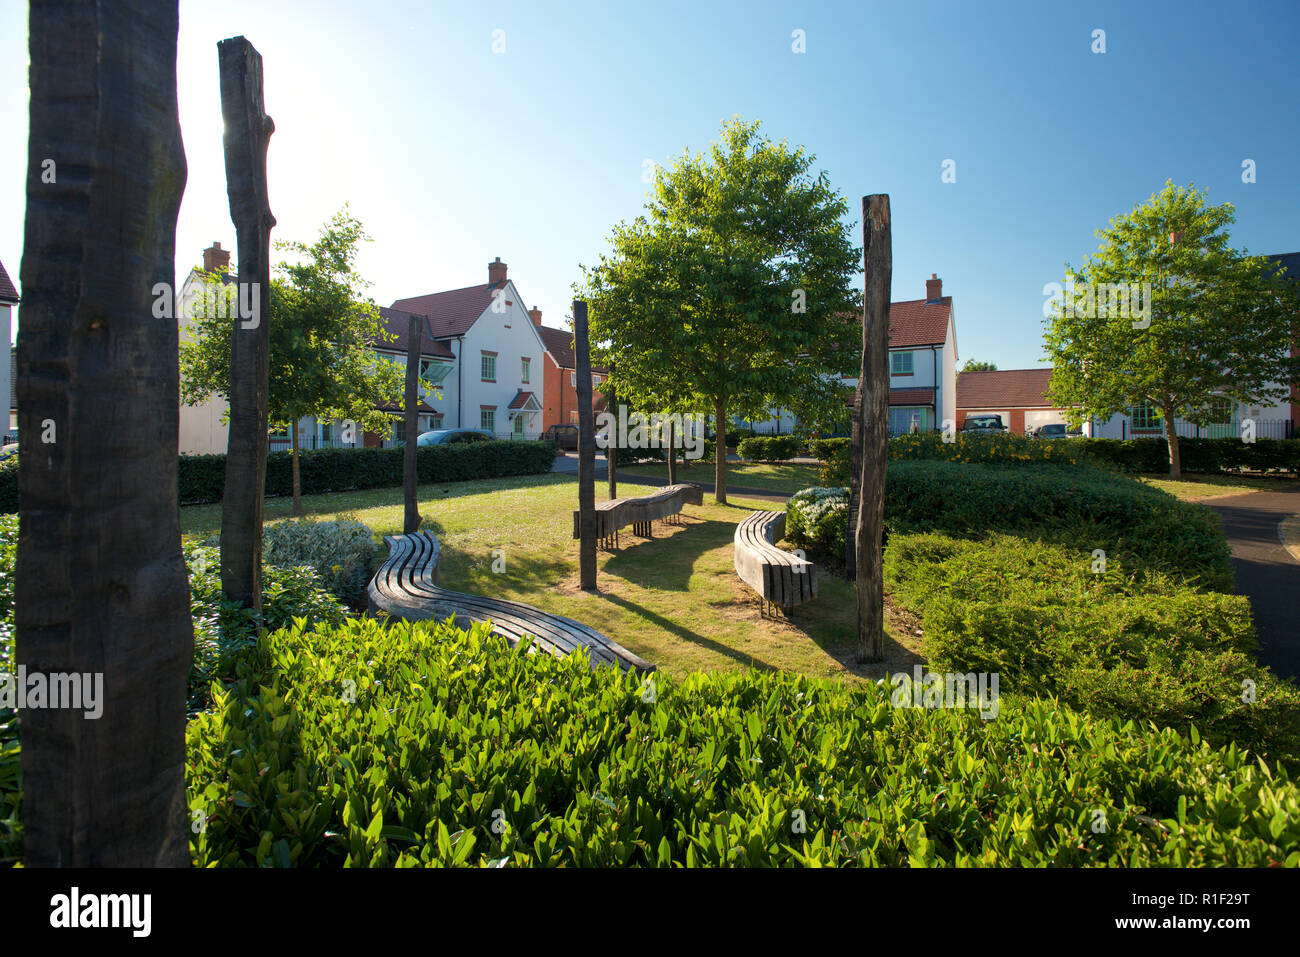 Eco friendly landscape design in urban area - Stock Image